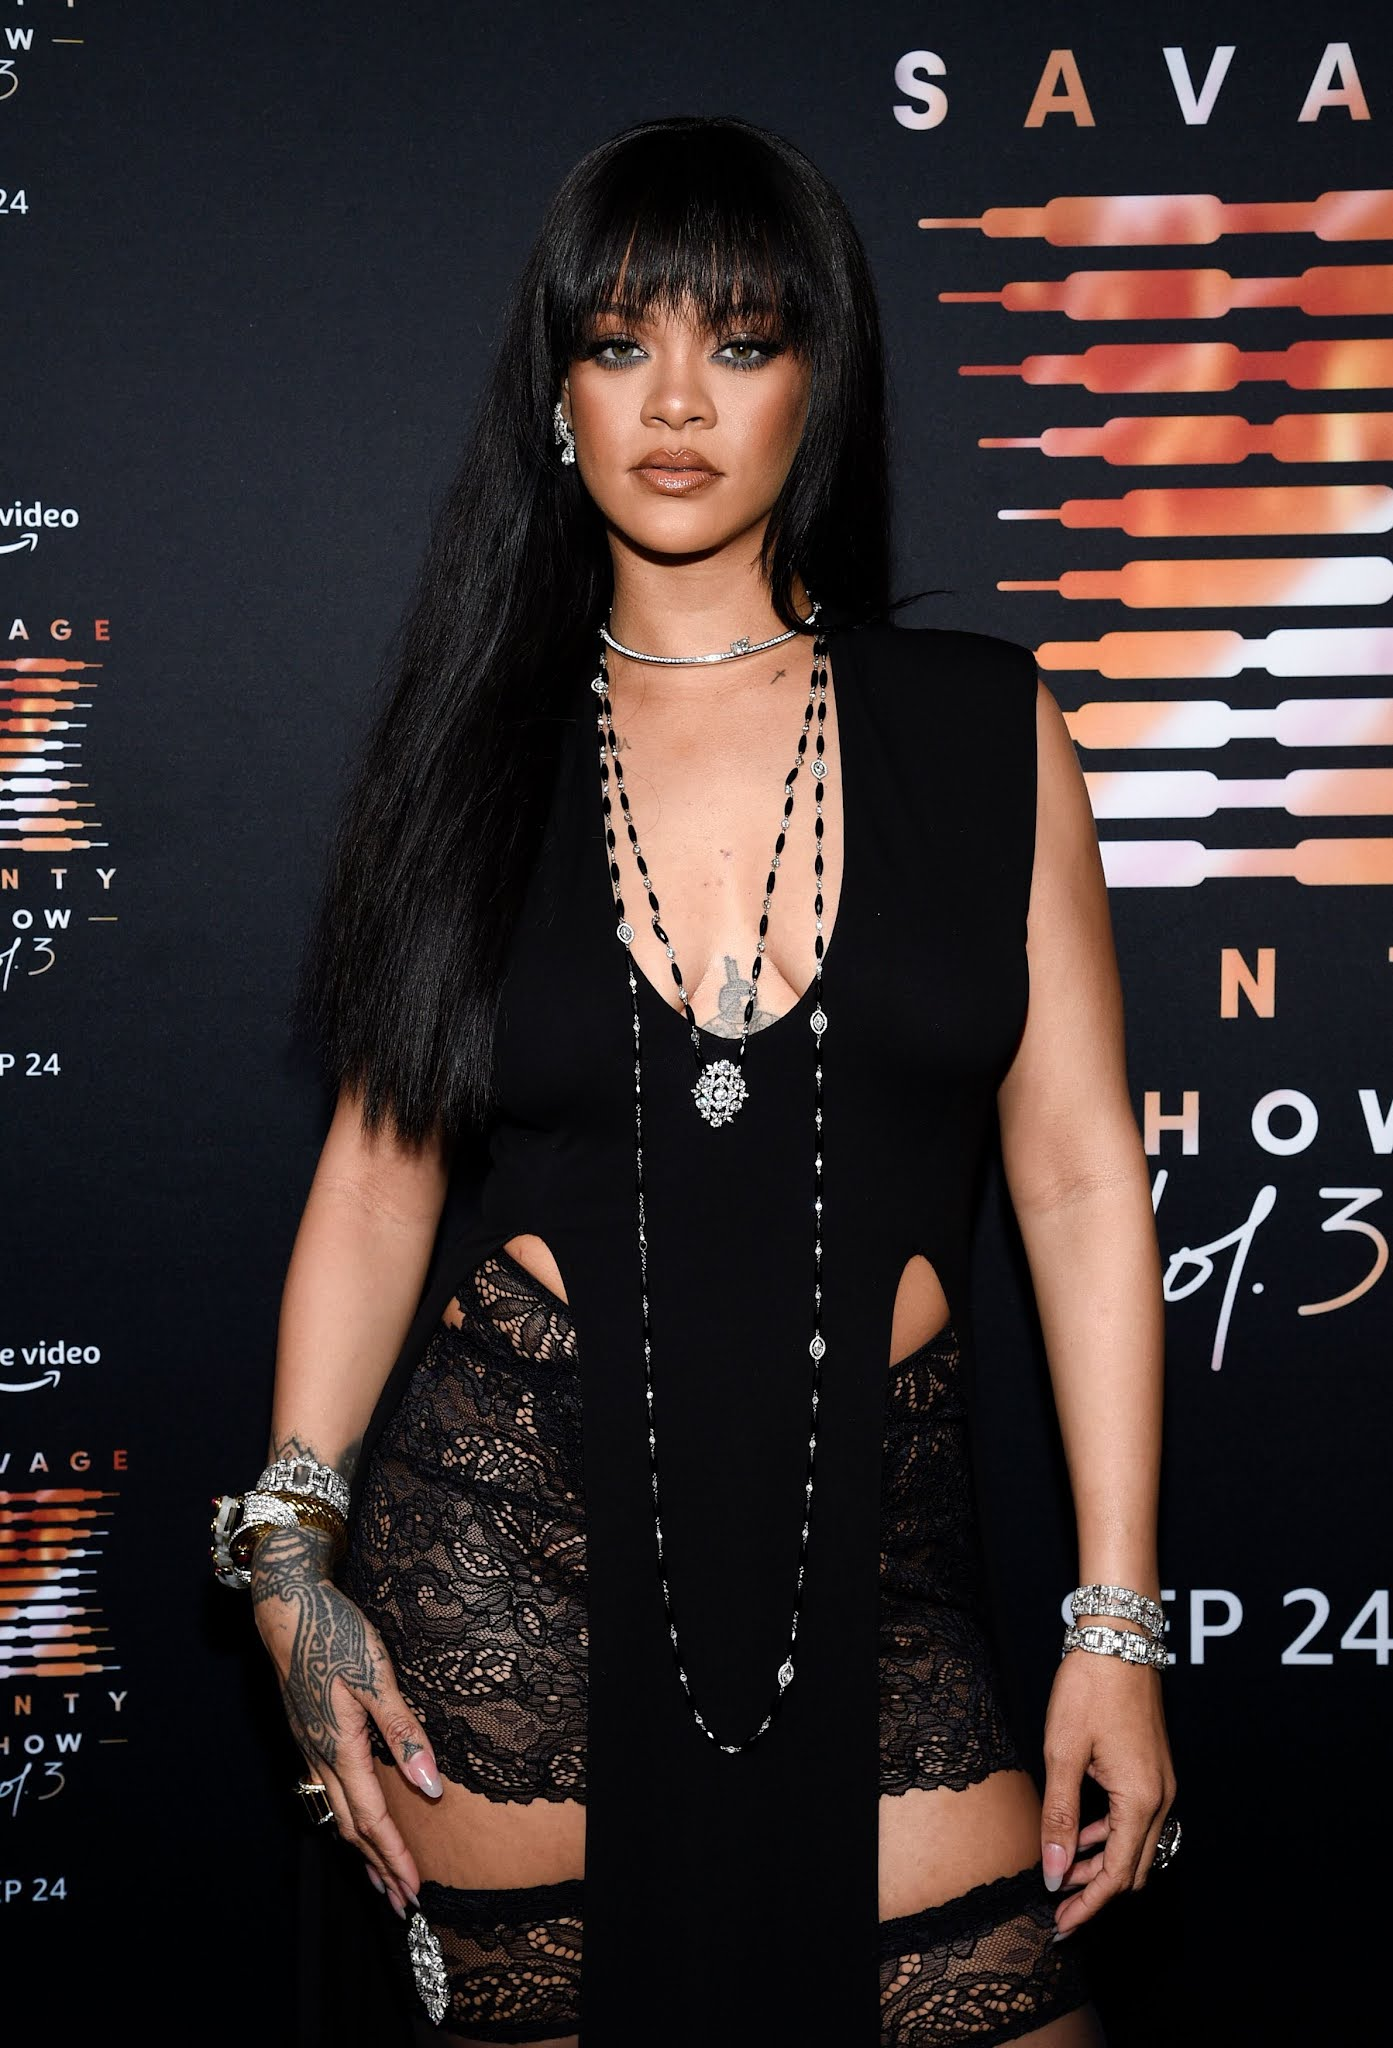 Rihanna arrives in lace shorts at the Savage x Fenty Vol 3 Premiere in NYC